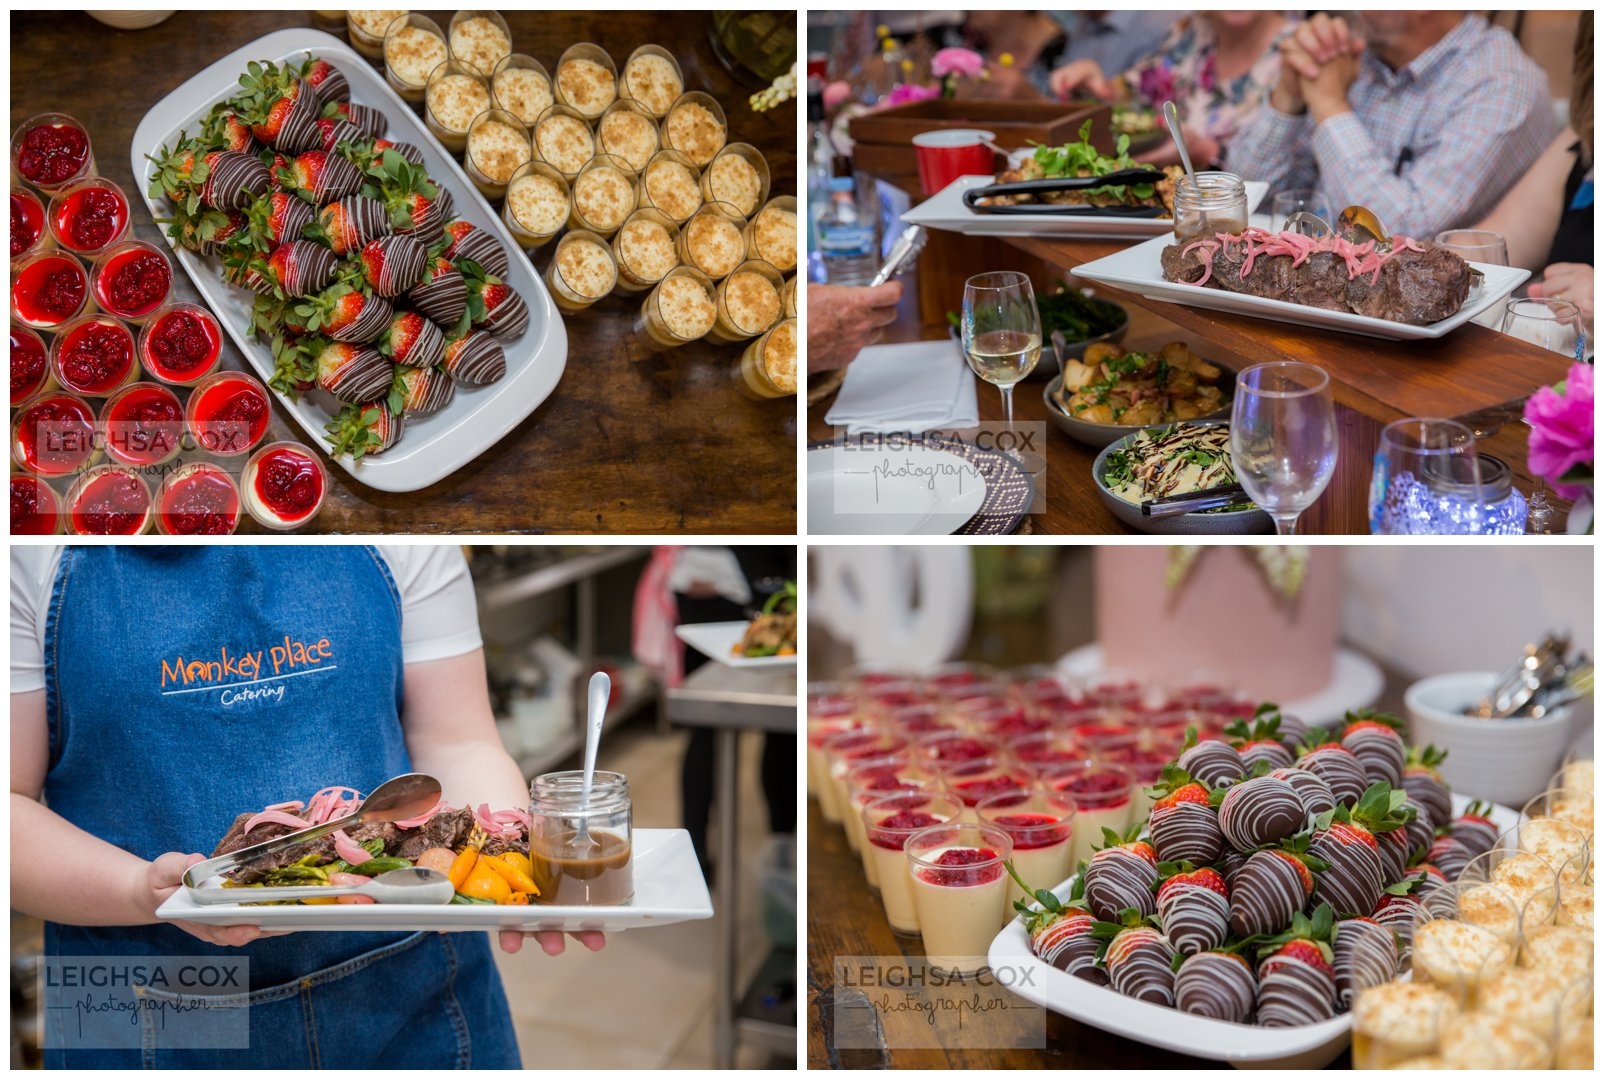 monkey place catering